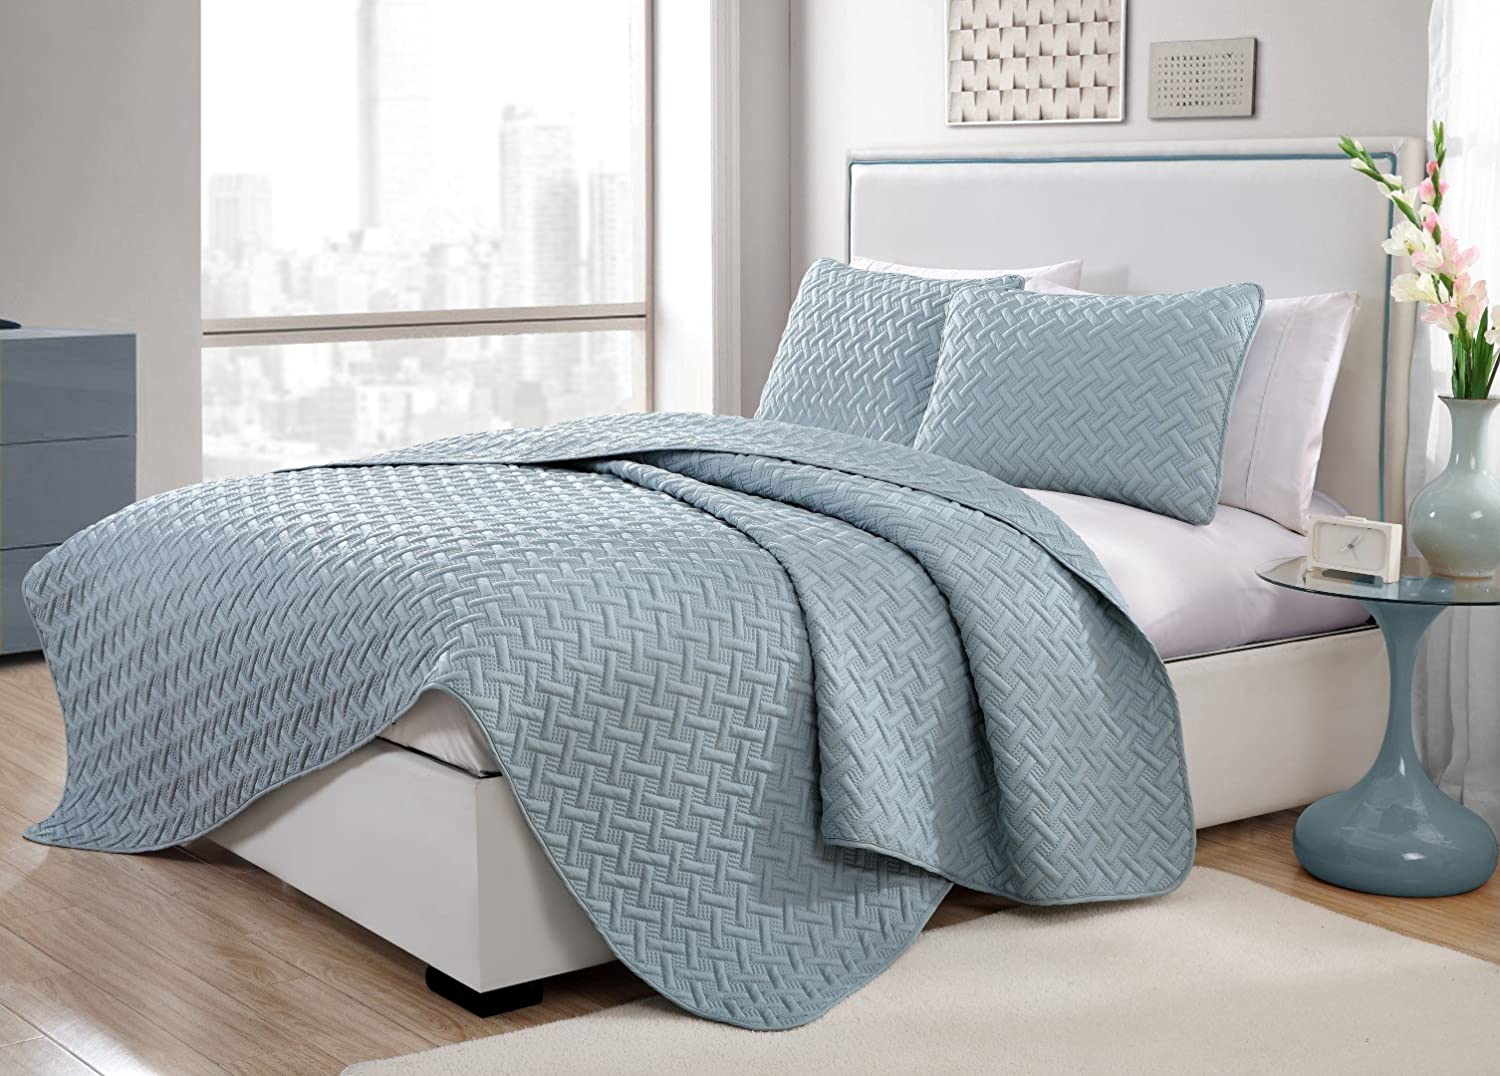 Twin Size Quilt Set in Blue Luxurious Geometric Pattern Beautiful Embossed 2 Pc Set w/ Sham